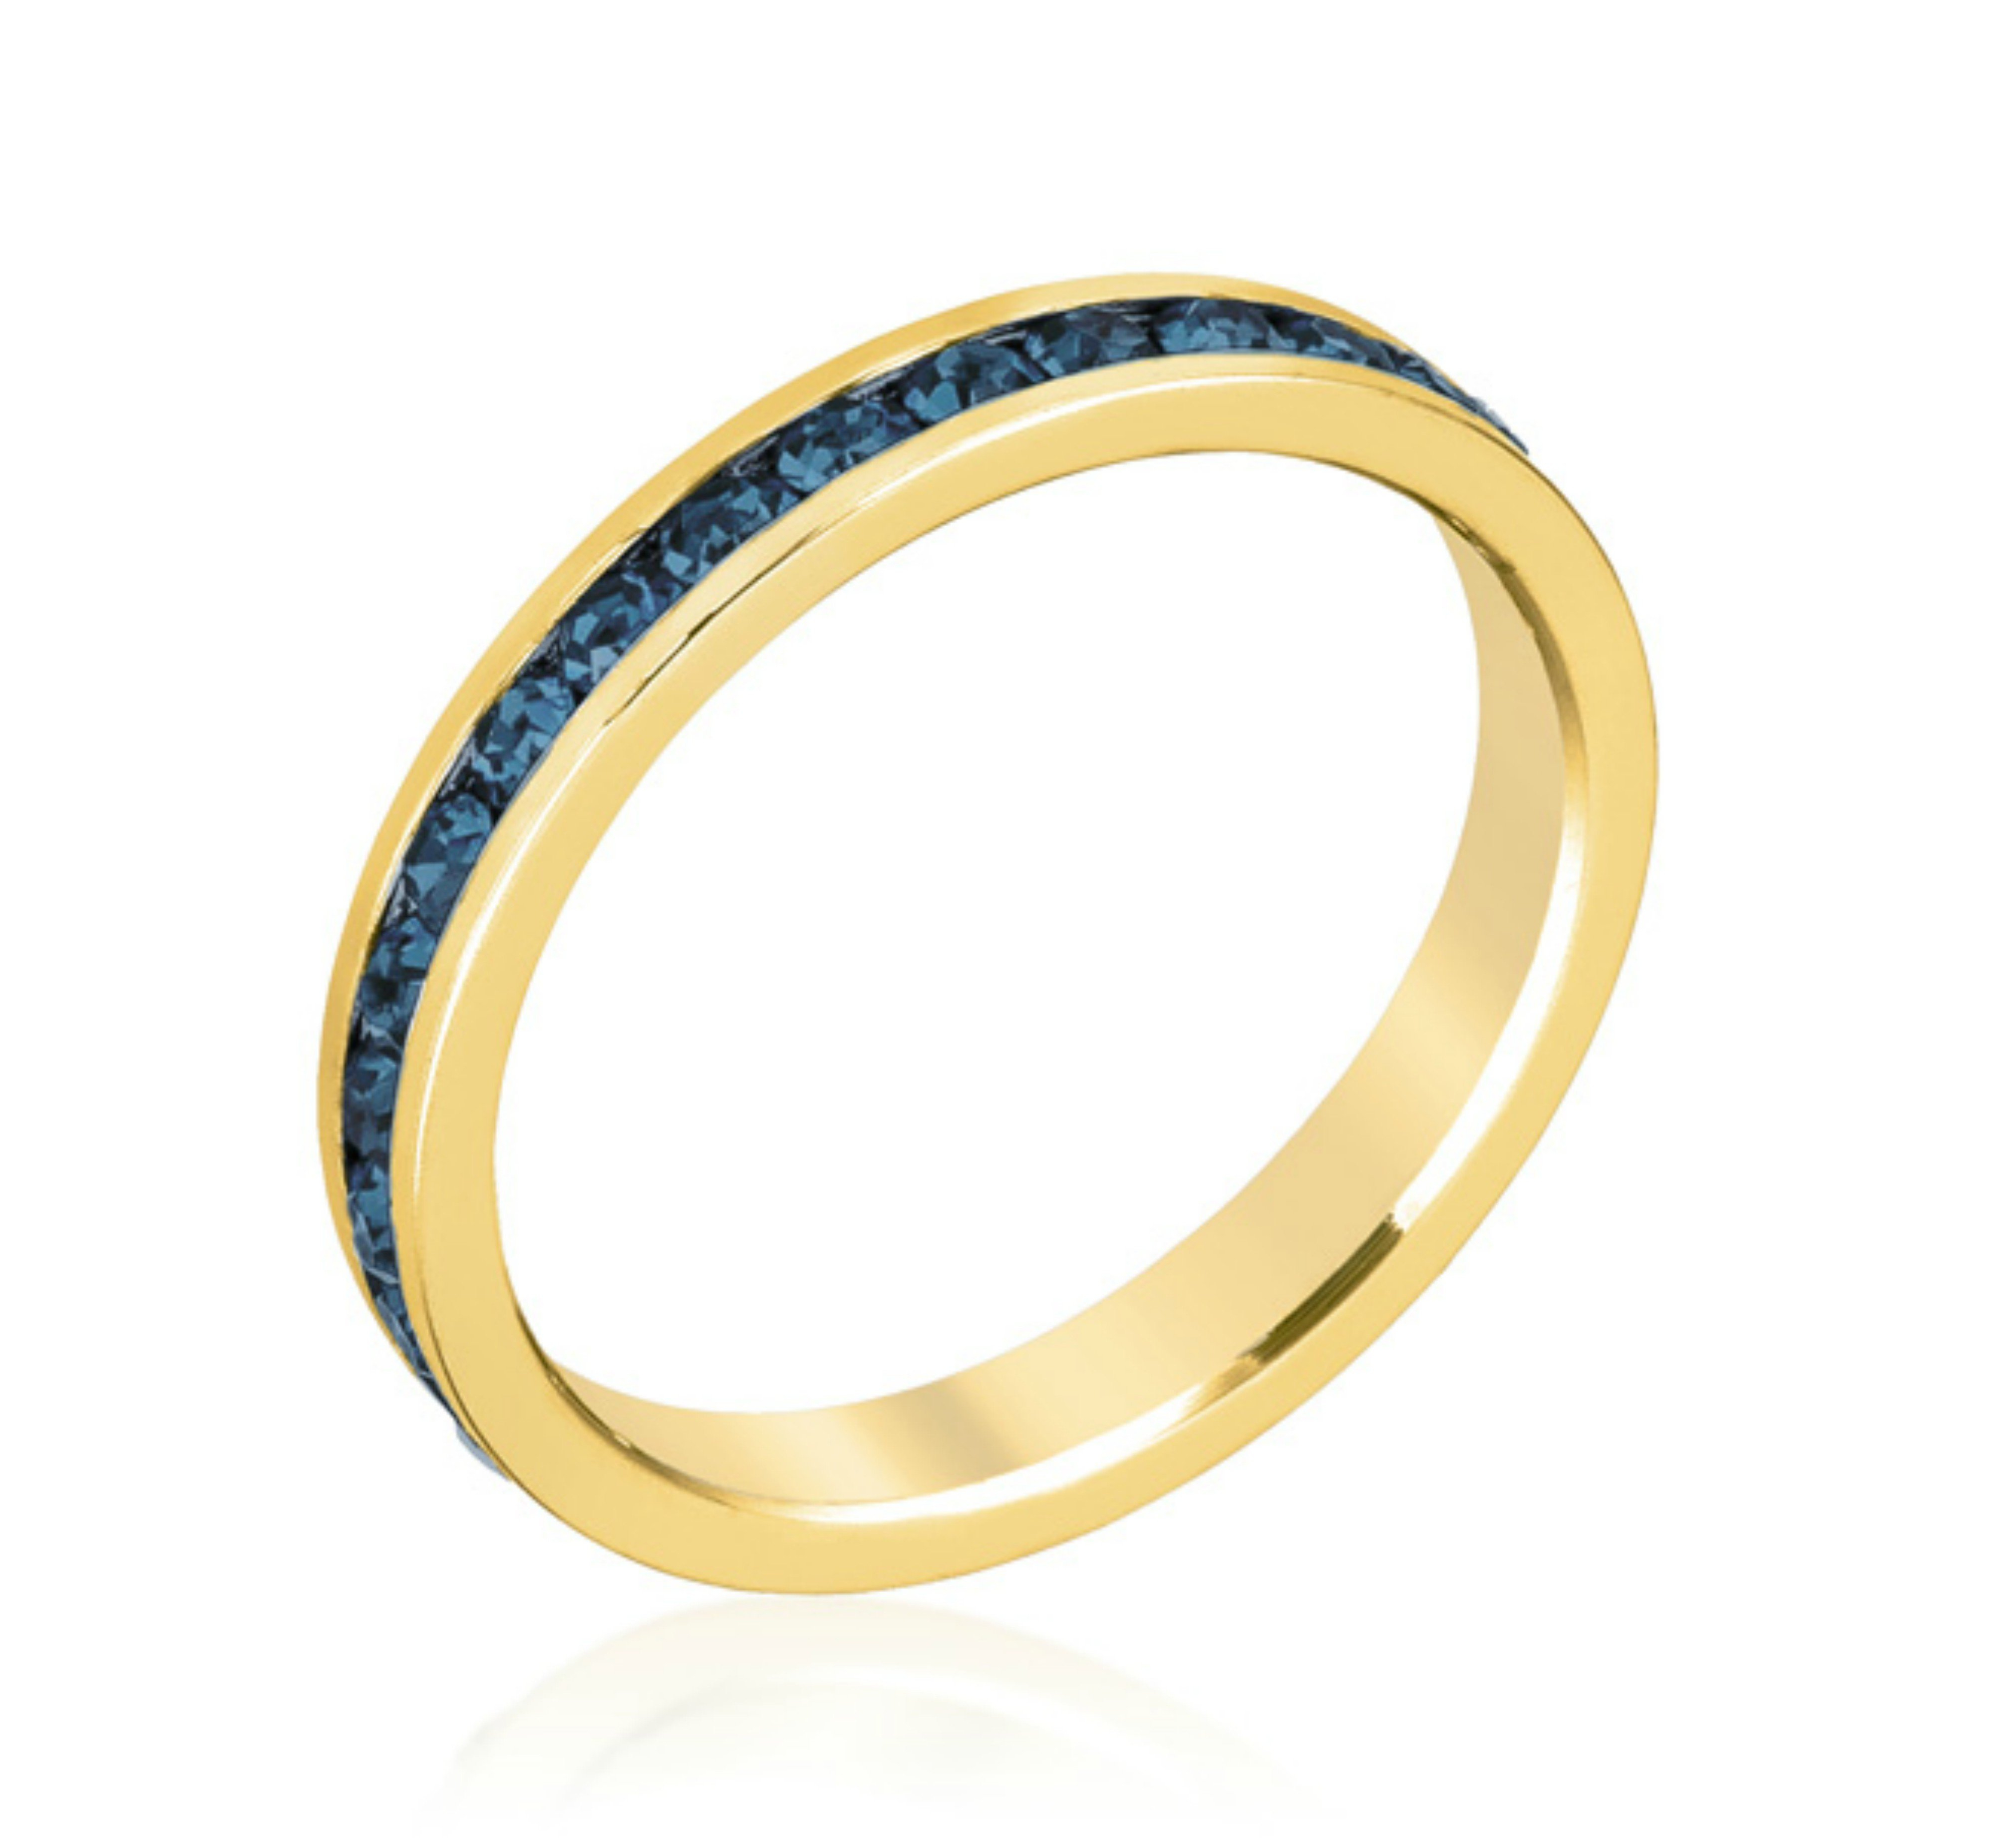 Image of Gail Sapphire Blue Eternity Stackable Ring | 1ct | 18k Gold